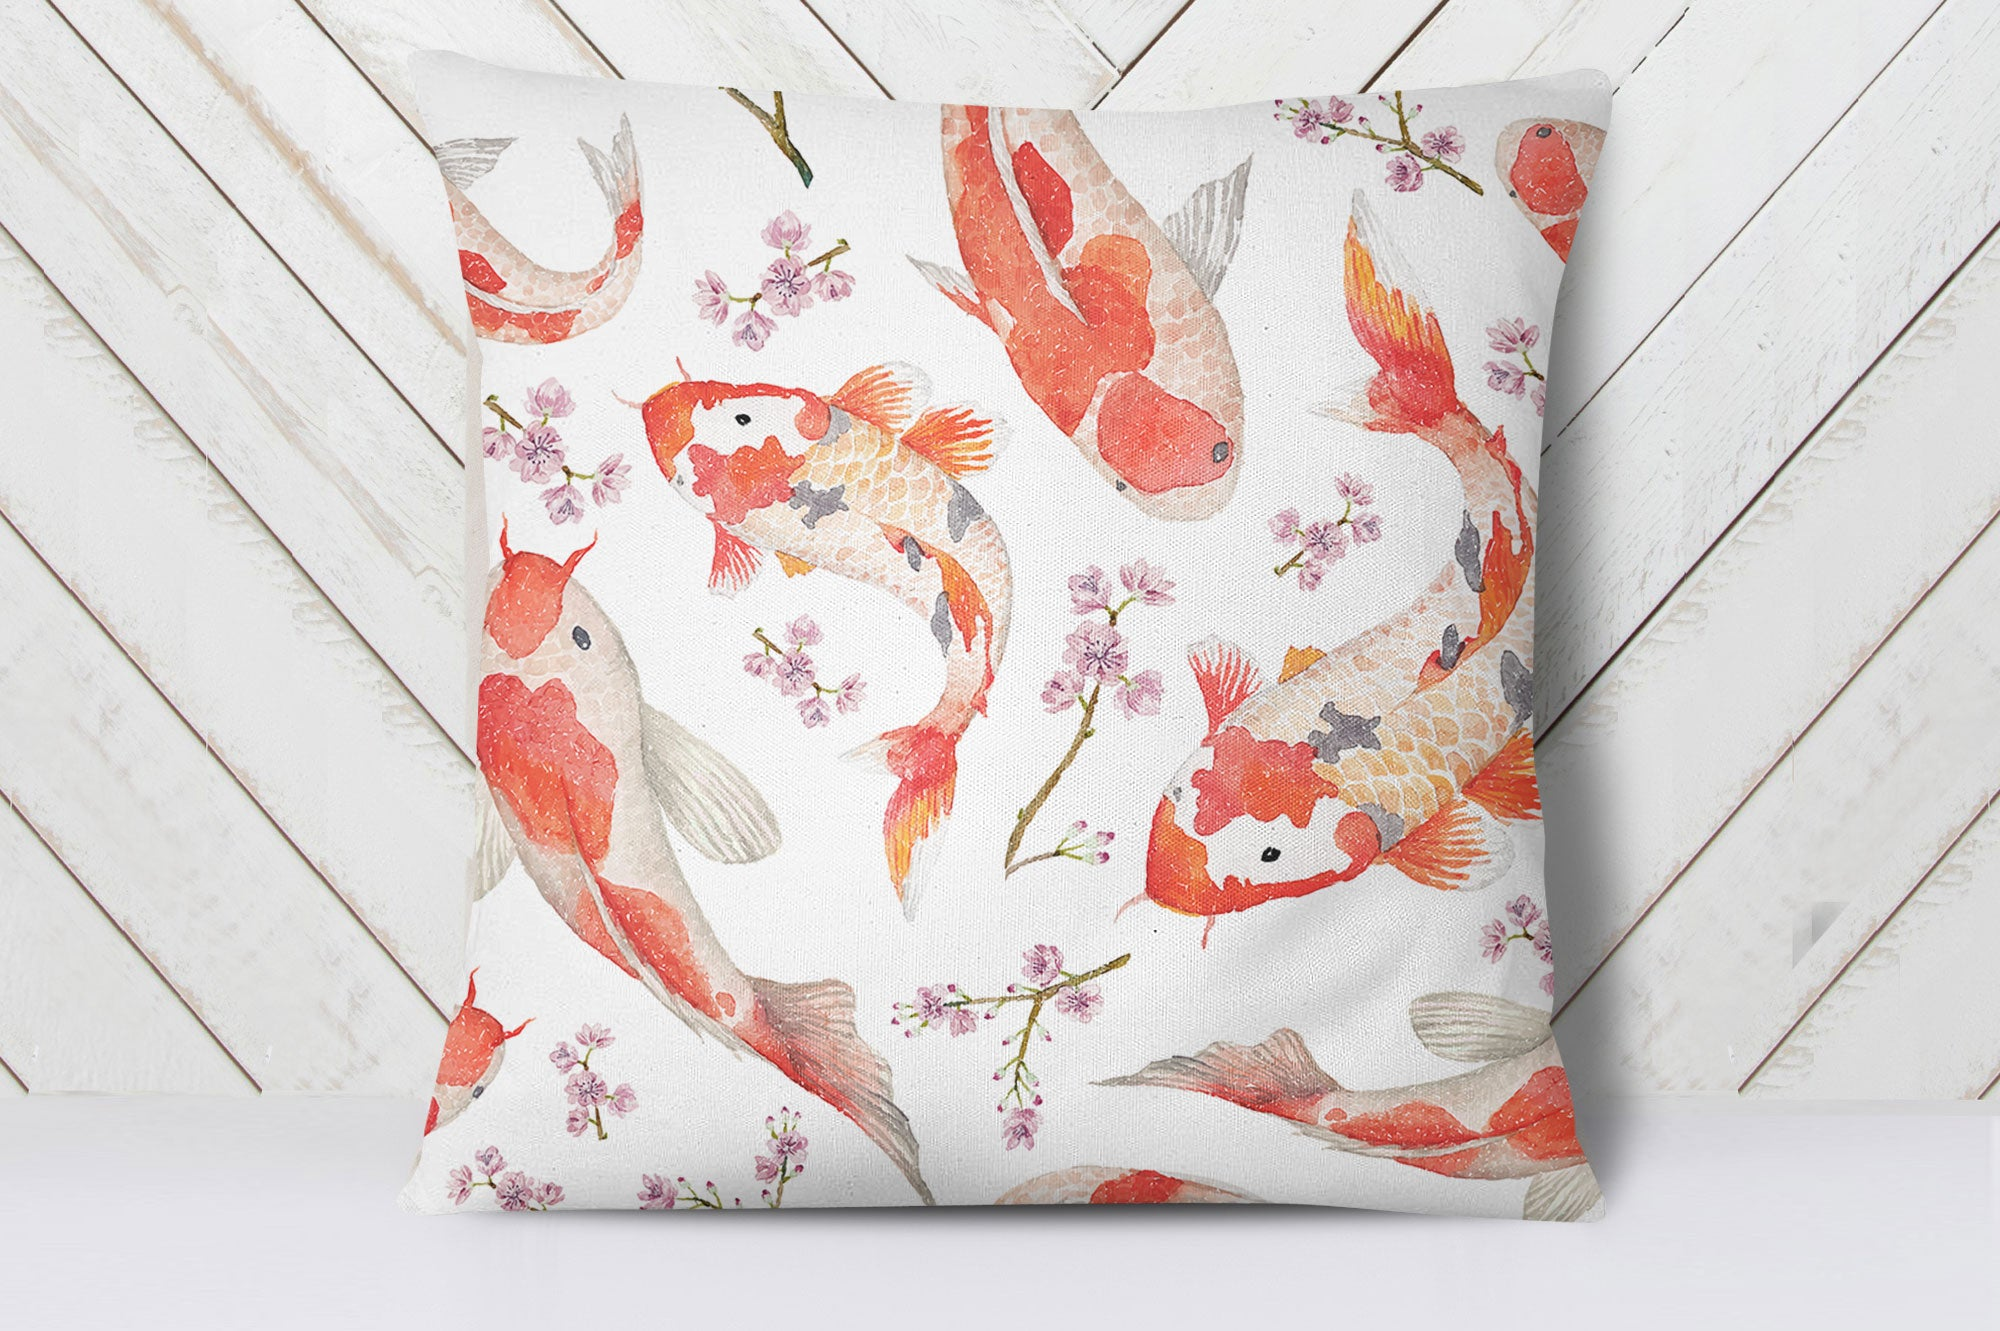 Blossom Koi Carp Cushion Cover